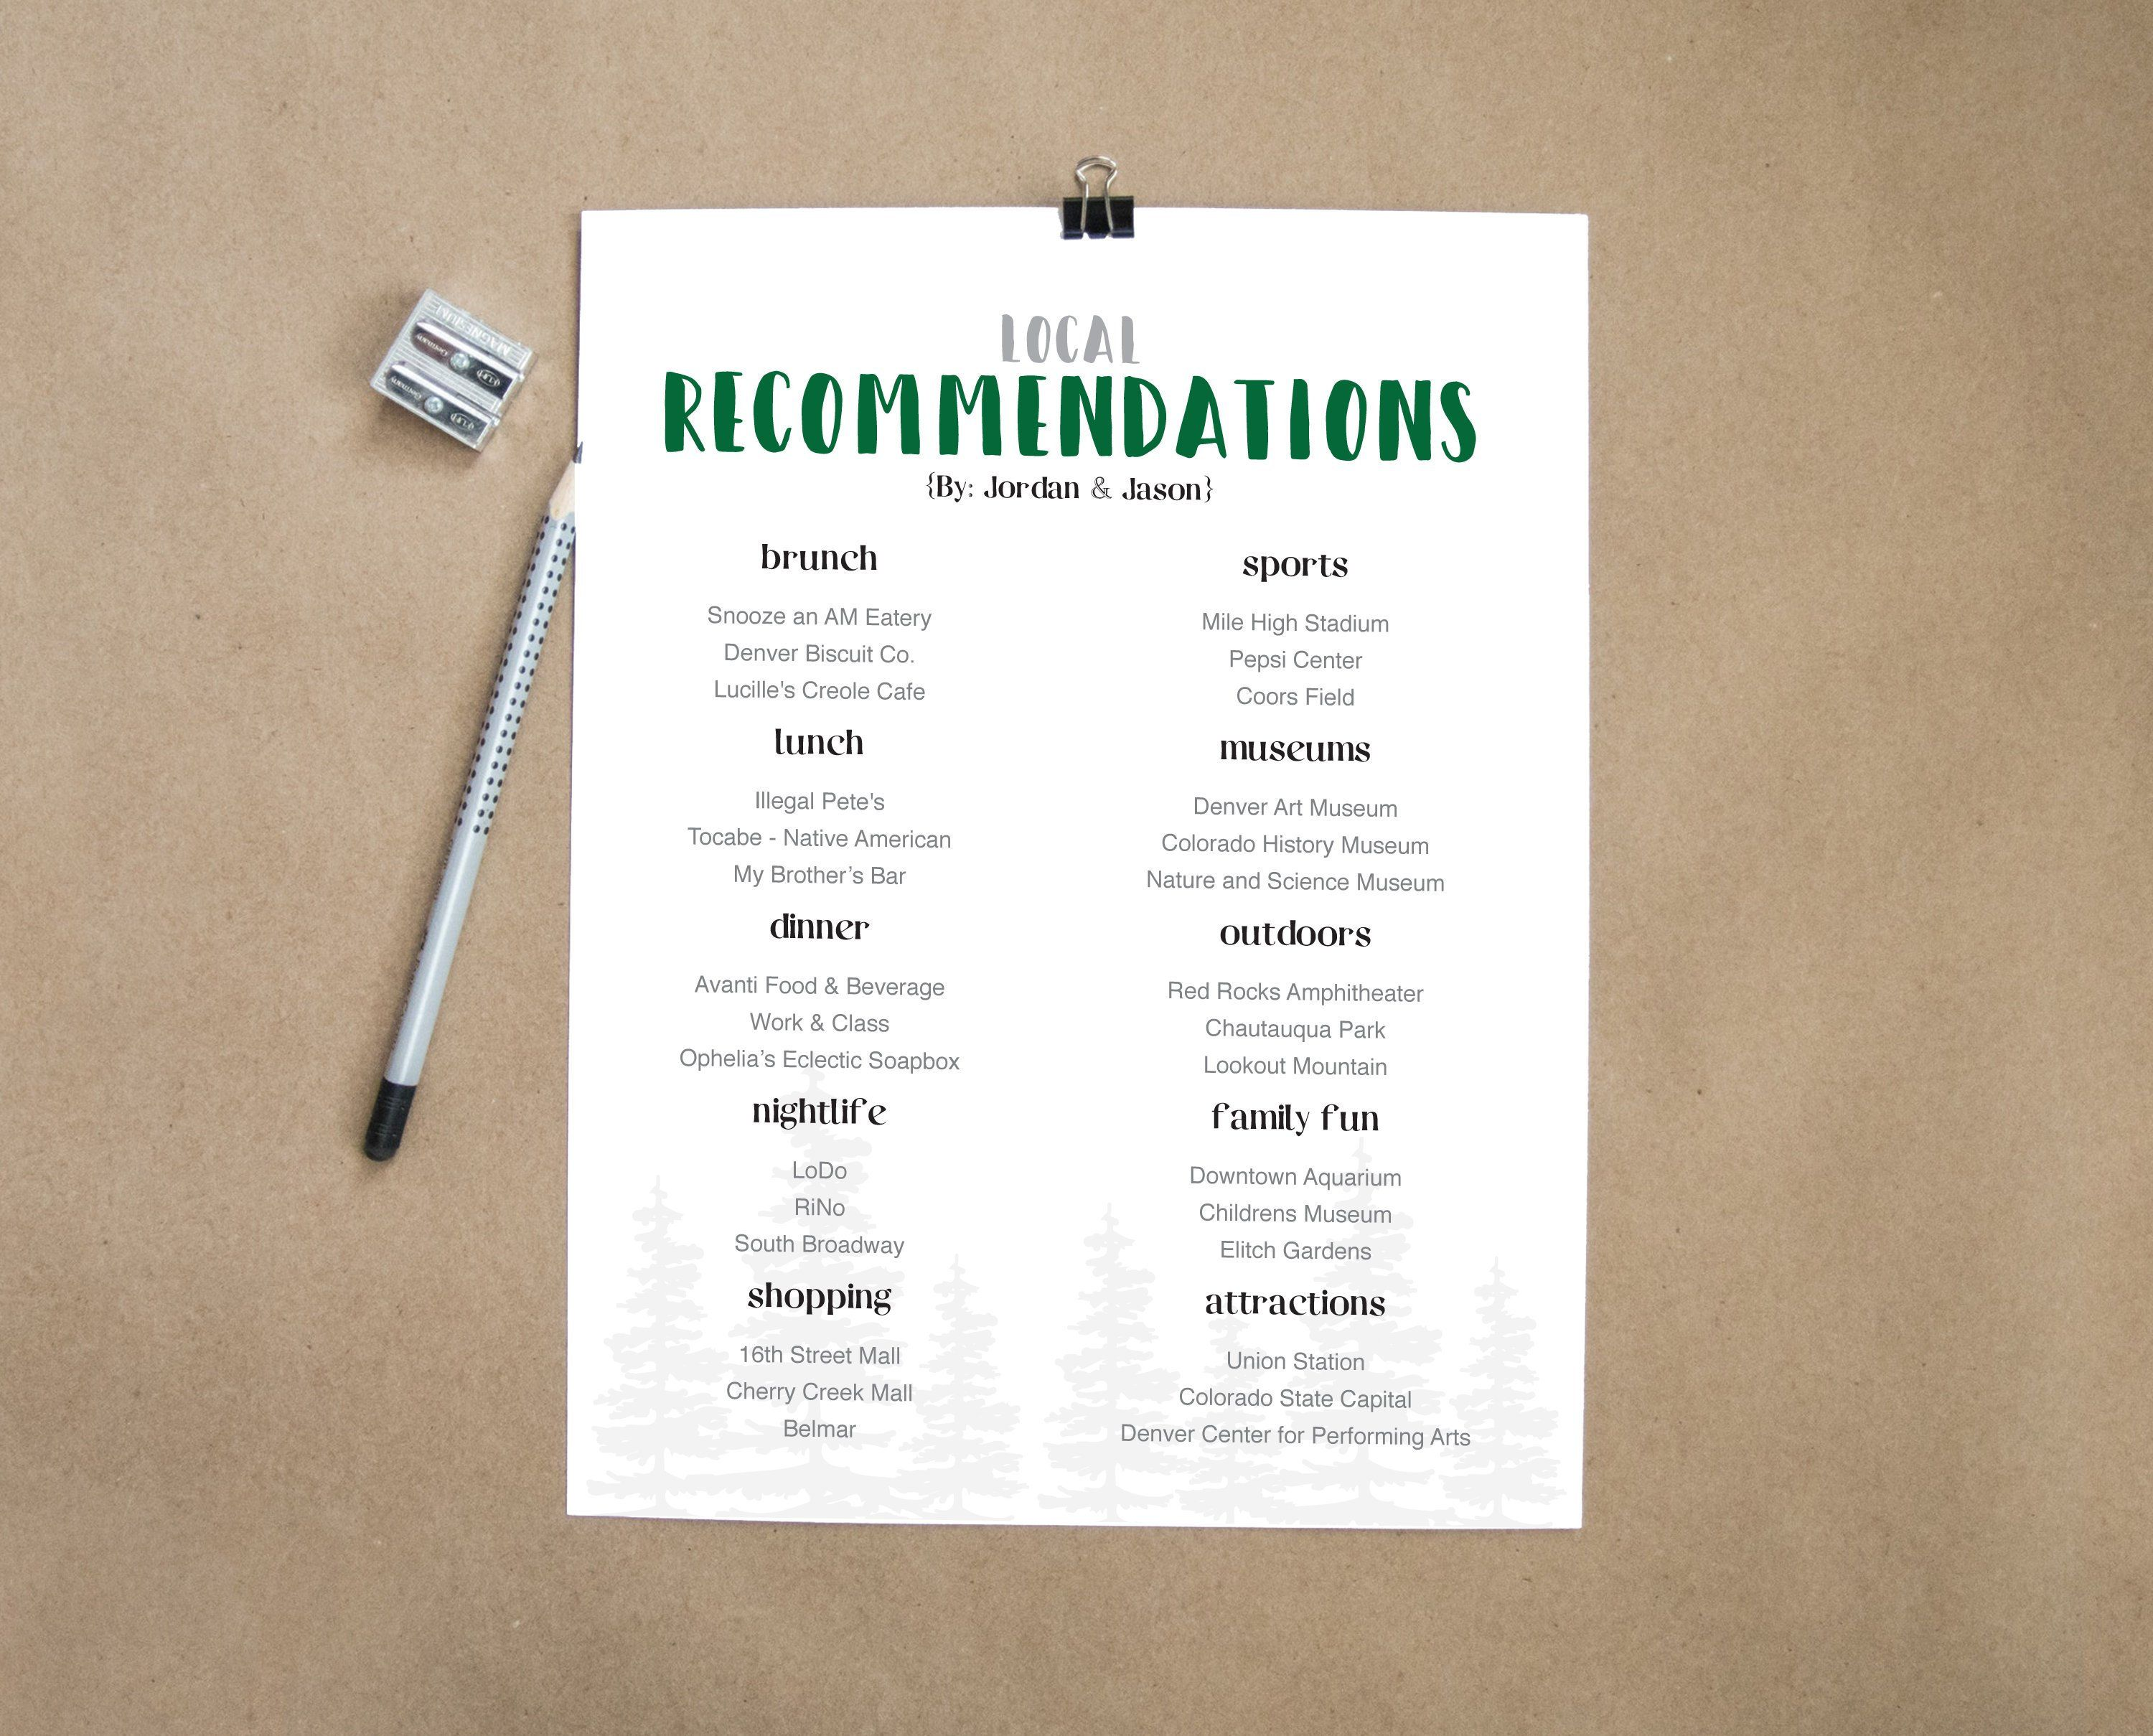 Airbnb Printables Host Recommendations Vacation Rental Etsy In 2021 Vacation Rental Airbnb Business Plan Template Vacation rental business plan template